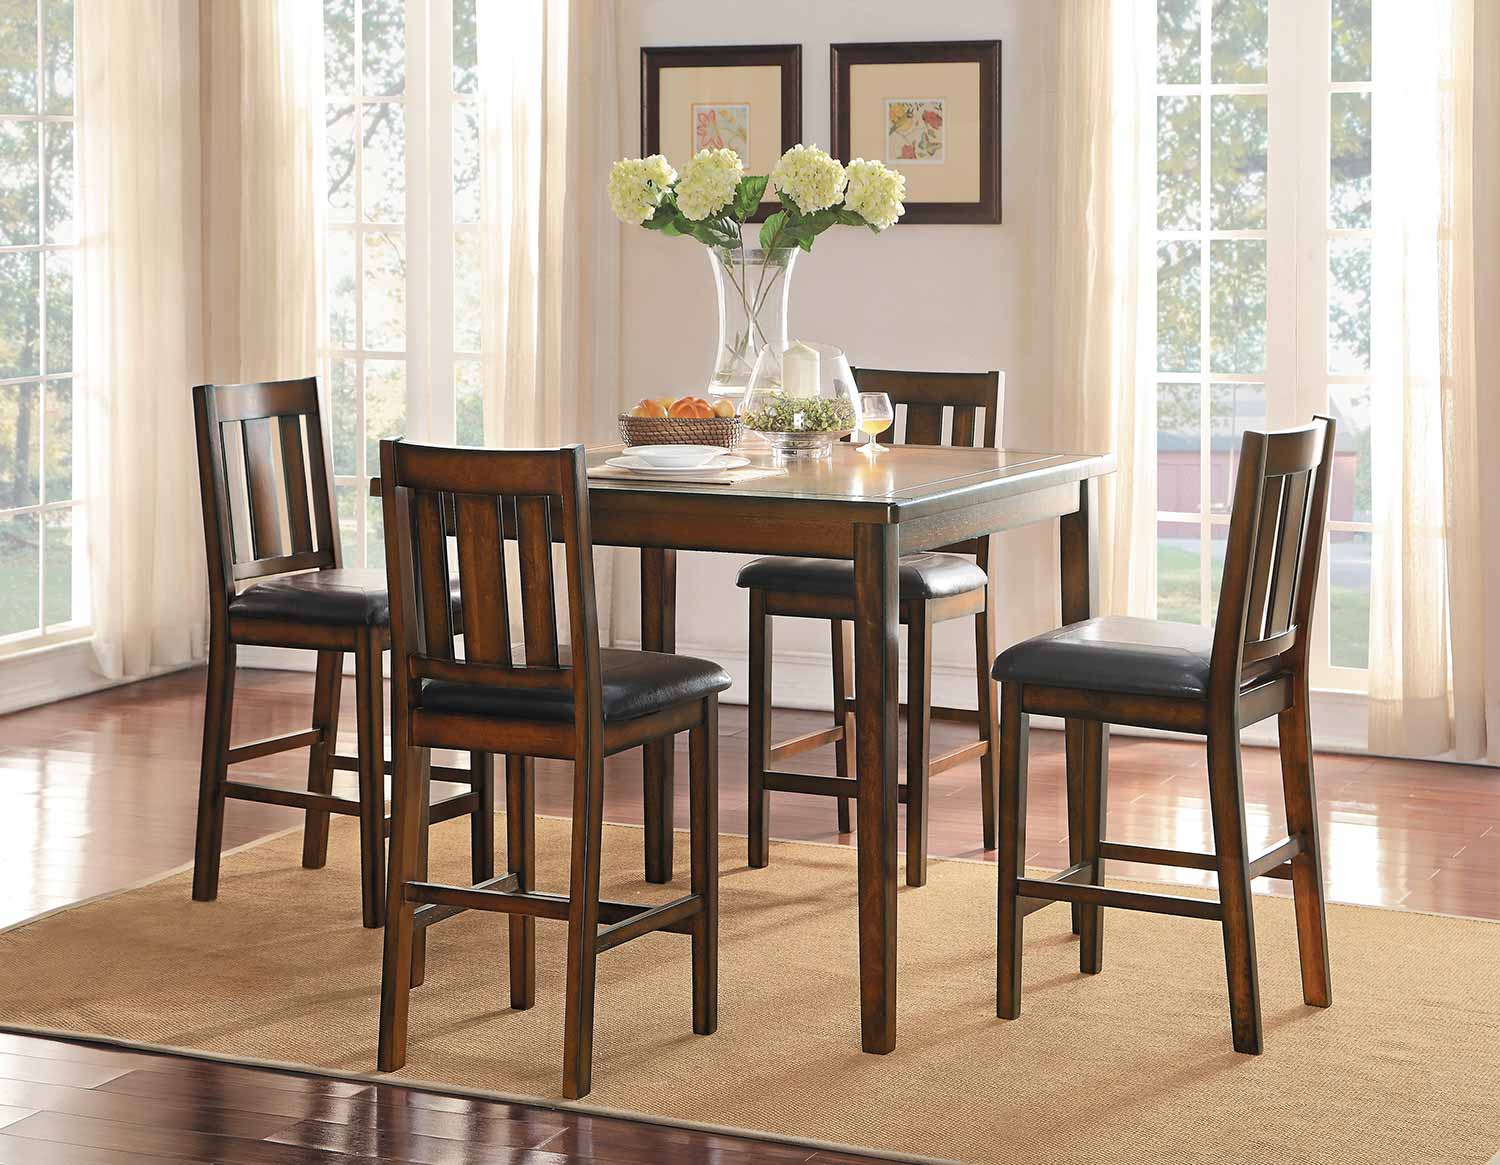 Homelegance Delmar 5- Piece Pack Counter Height Dining Set - Burnish Finish